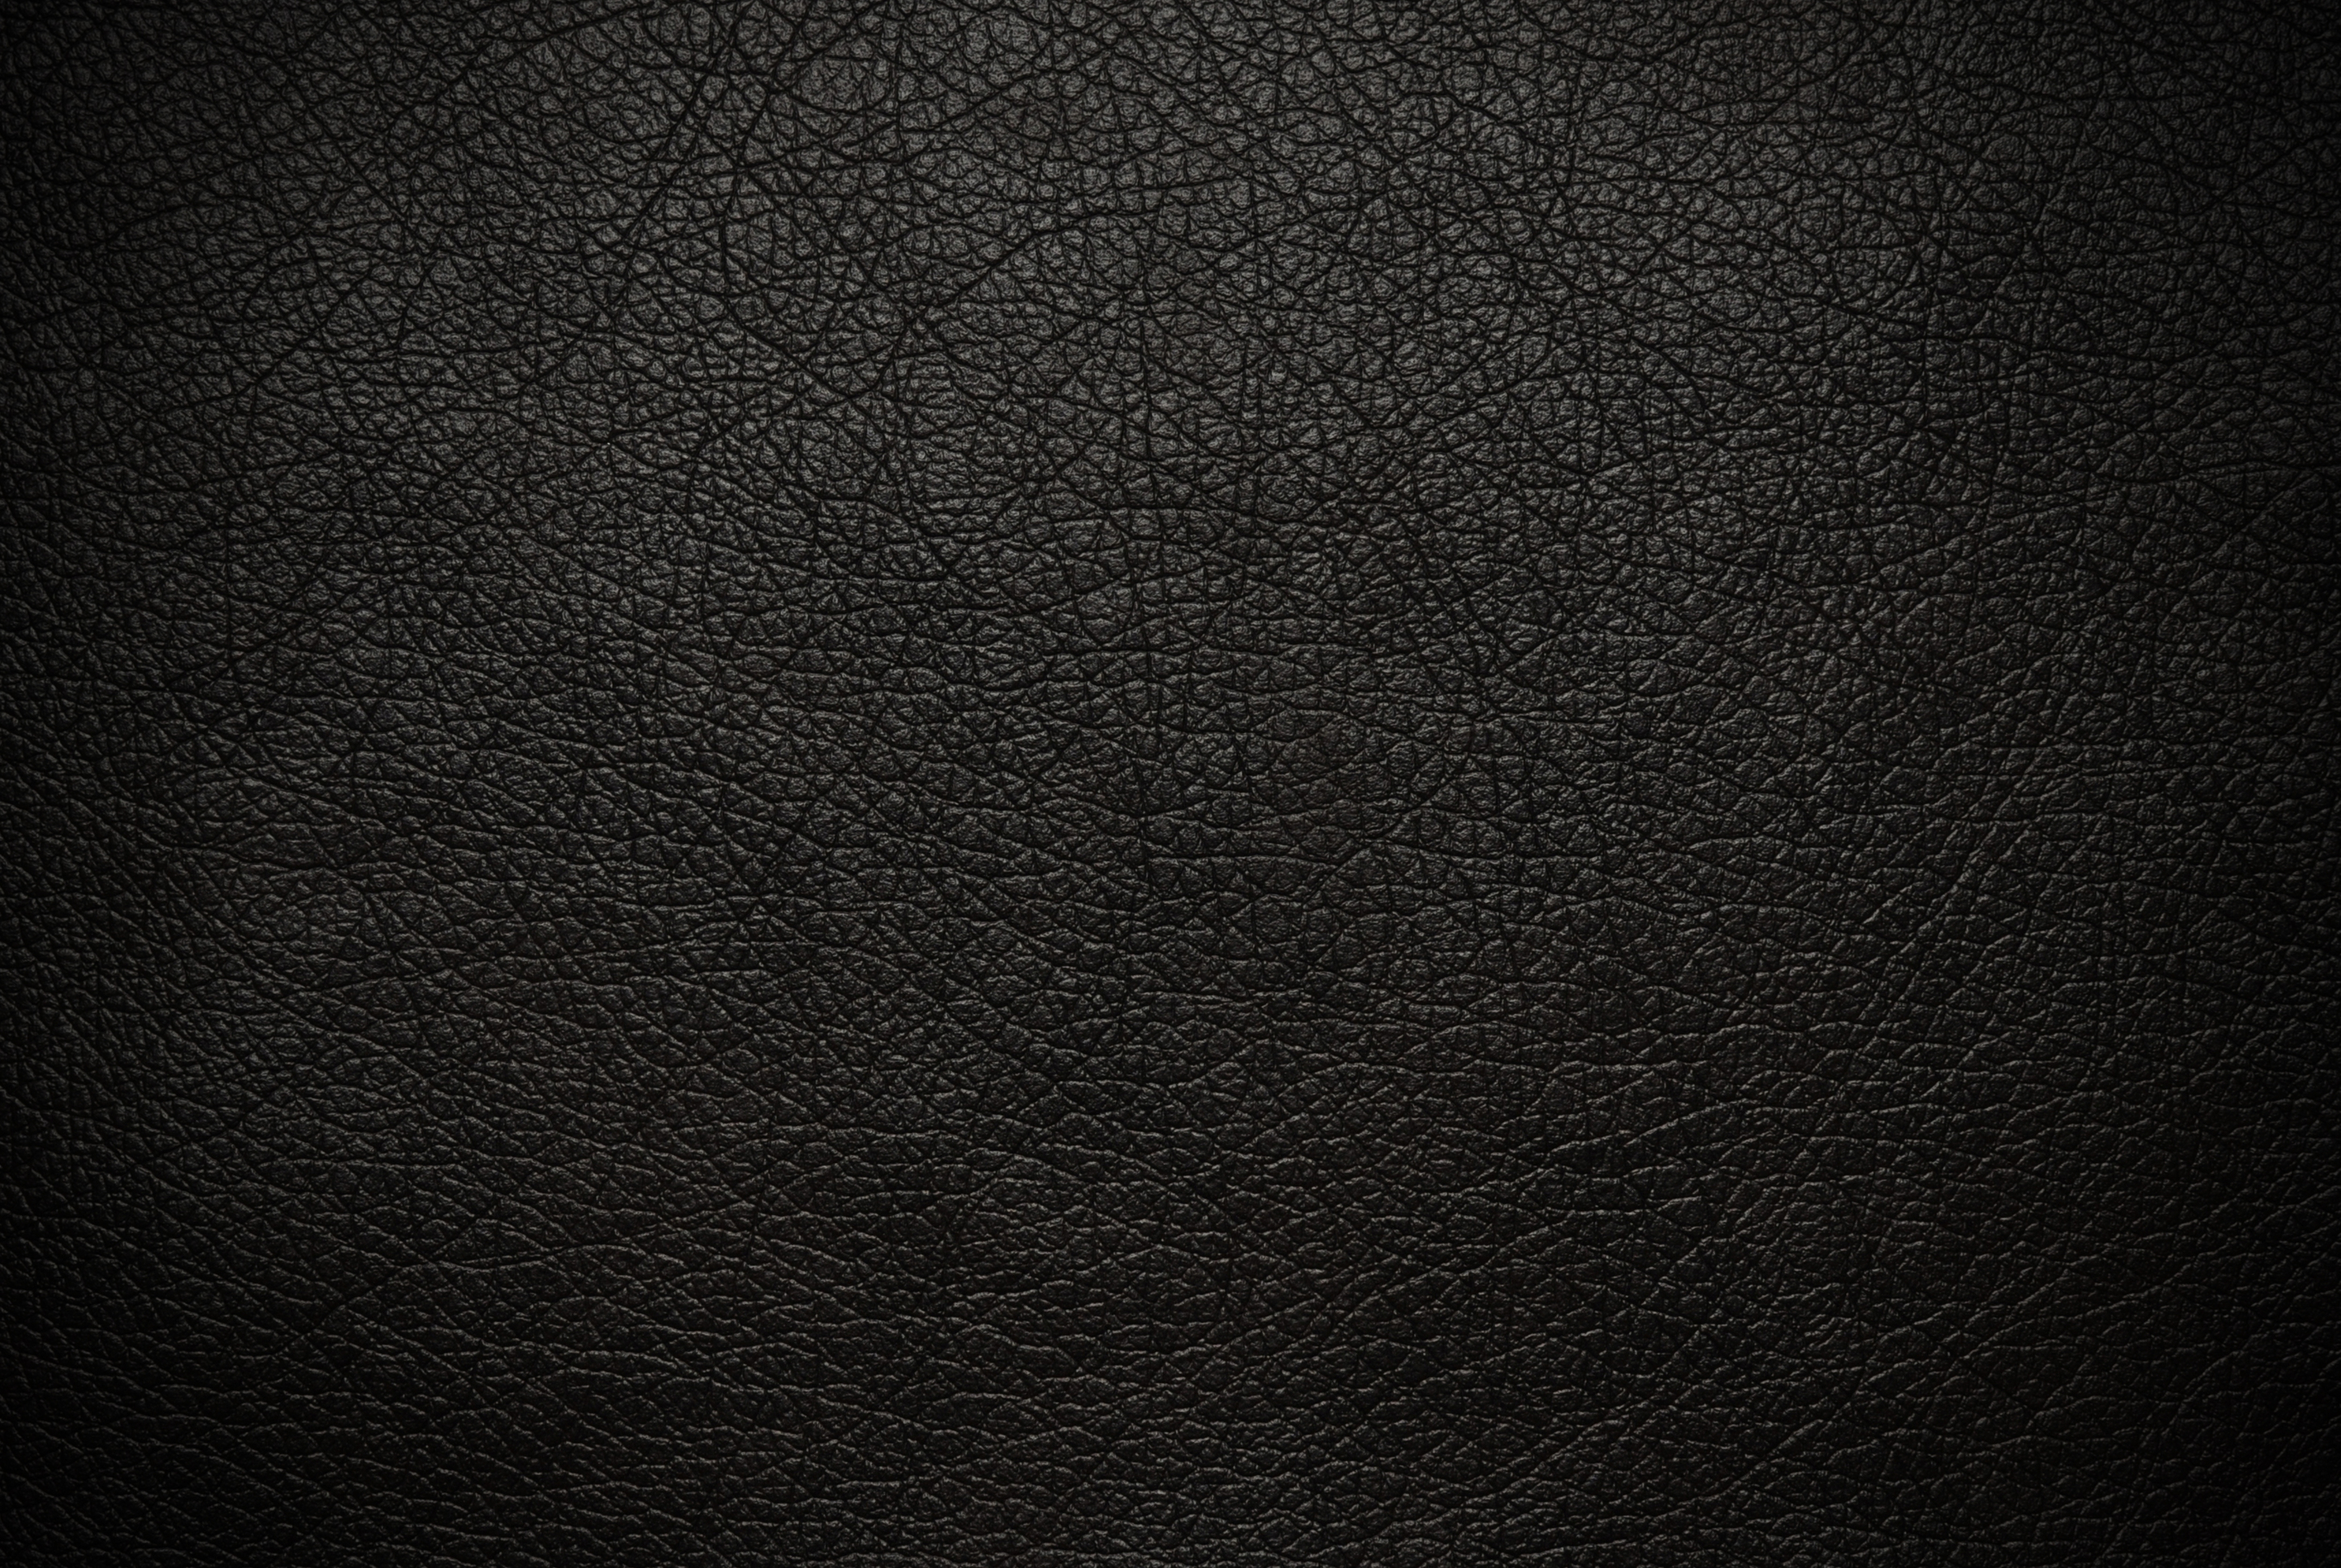 4K wallpaper   Textures   black background texture leather cracked 5000x3350